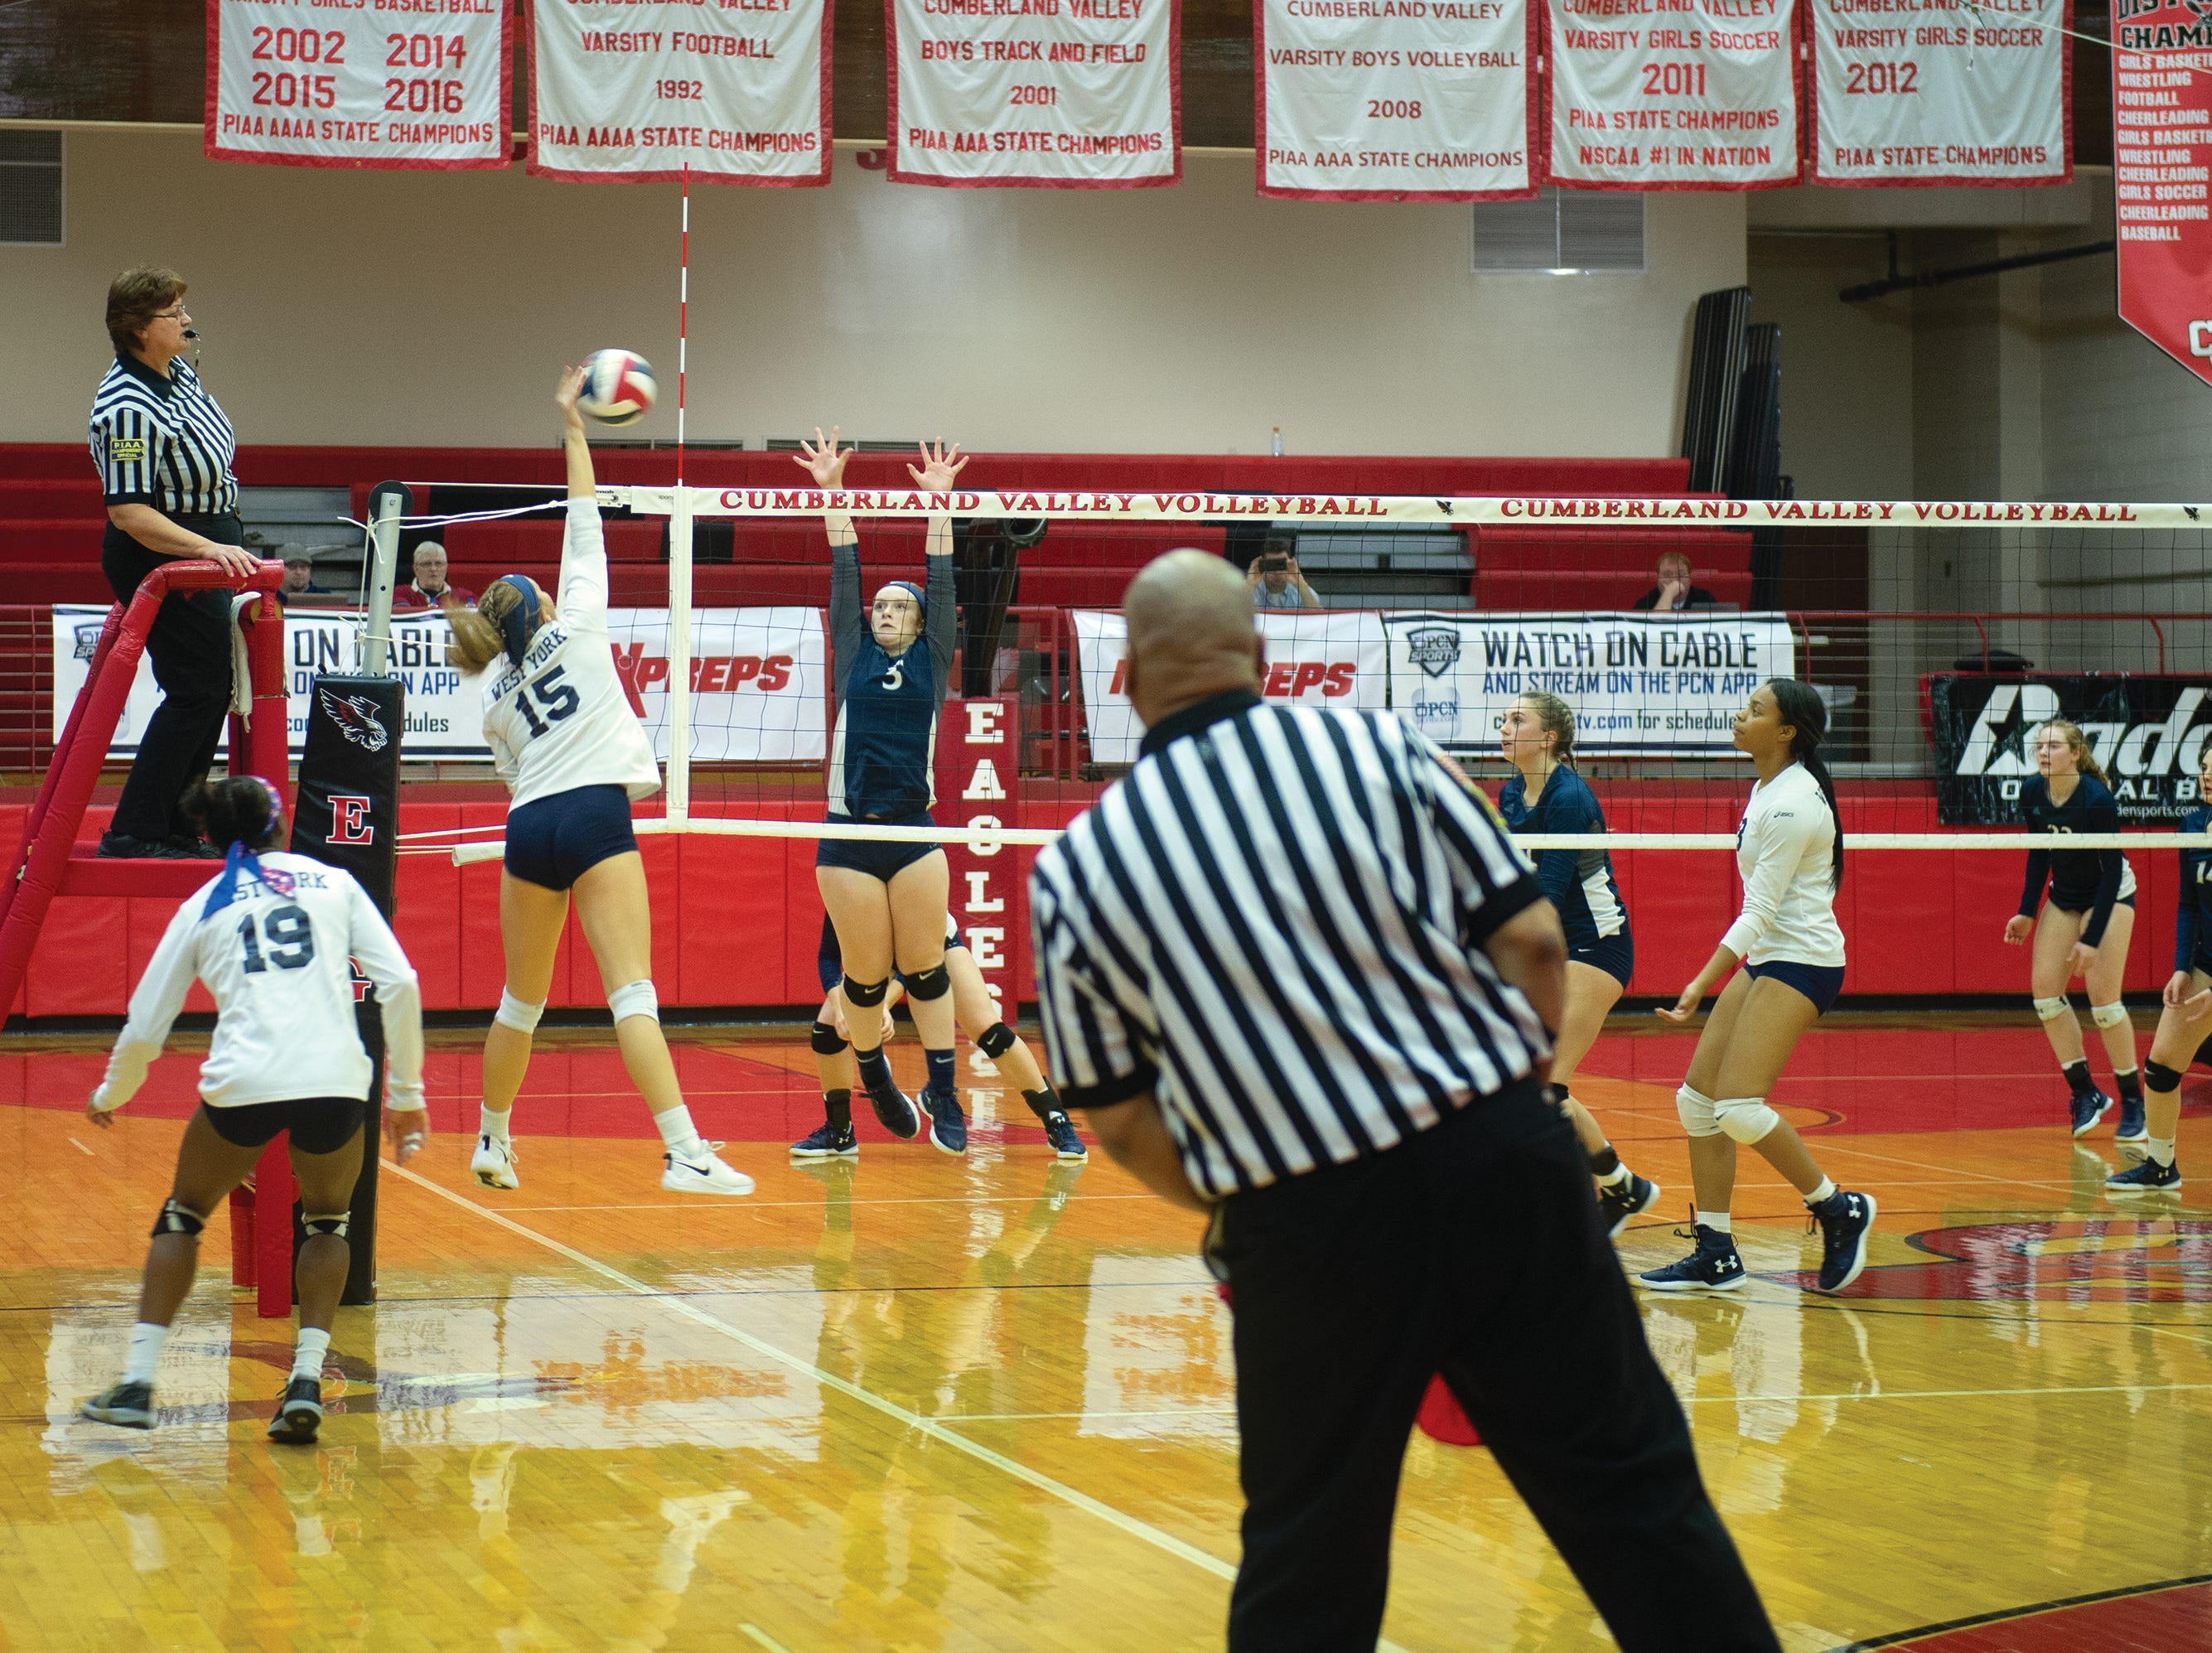 West York's Gianna Krinock goes up for a spike in the third game against Warren in the PIAA Class 3A girls' volleyball championship at Cumberland Valley High School. West York won 3-0.